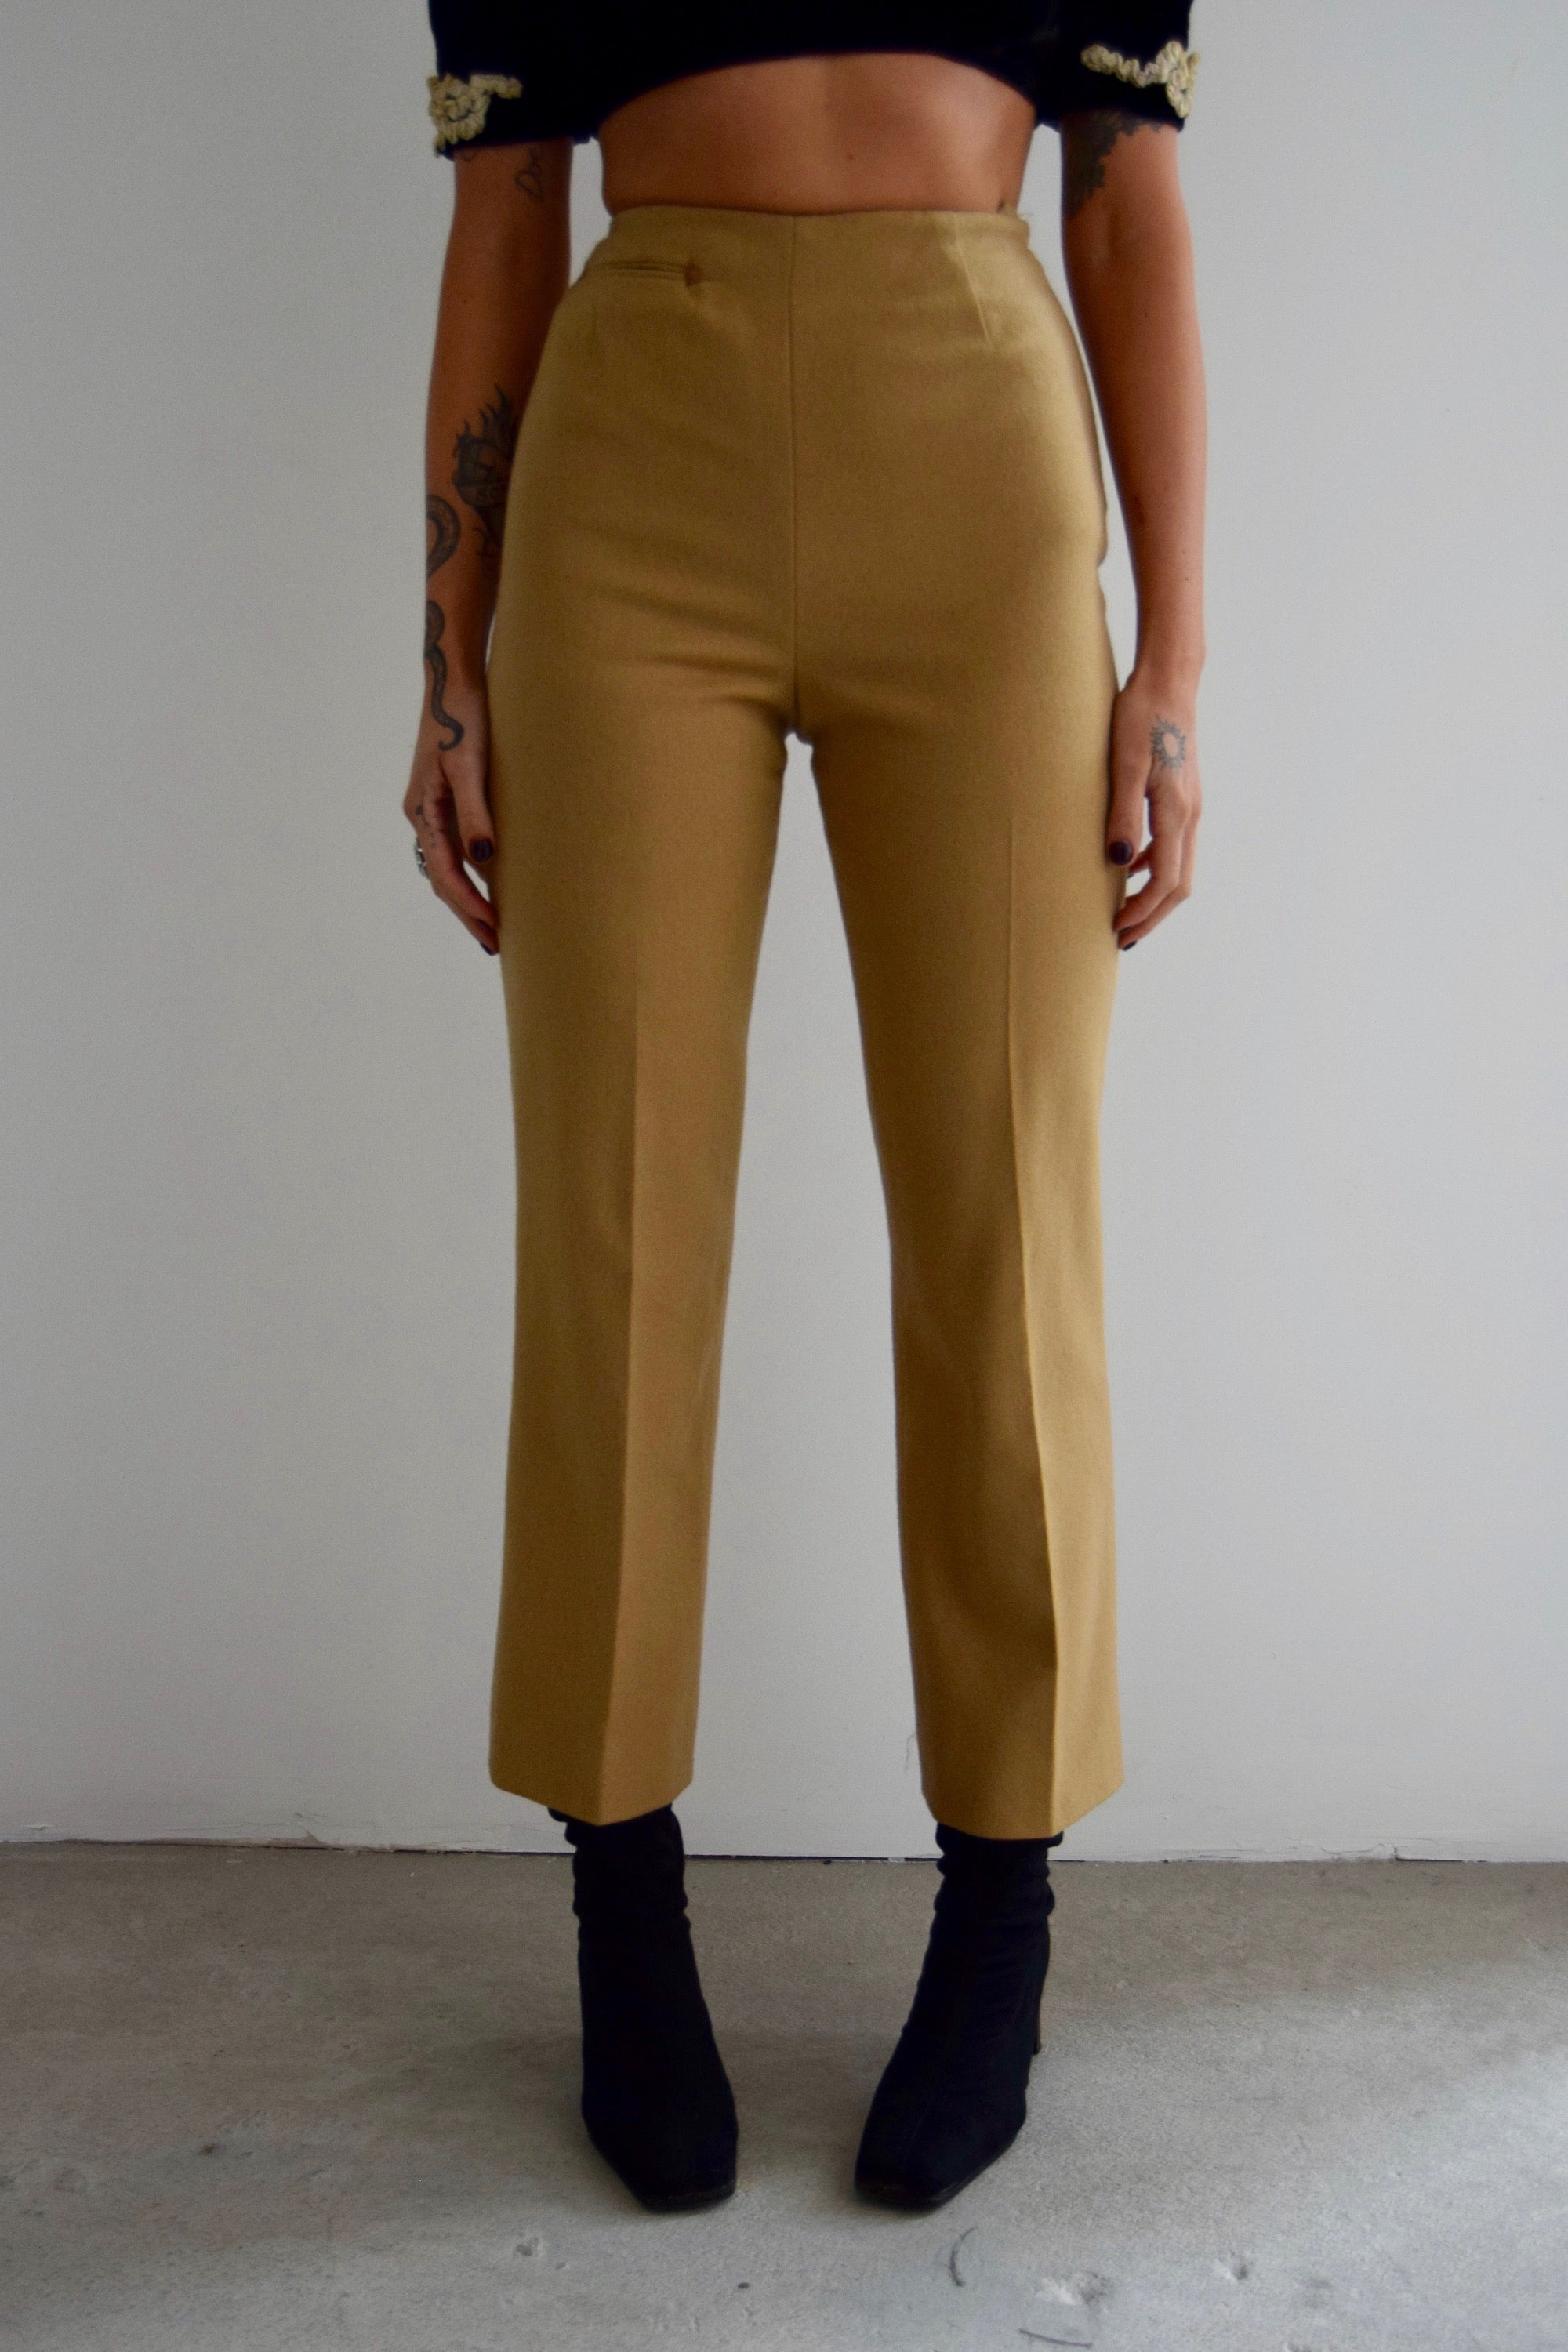 Vintage Evan-Picone Camel Wool Smile Pocket Pants